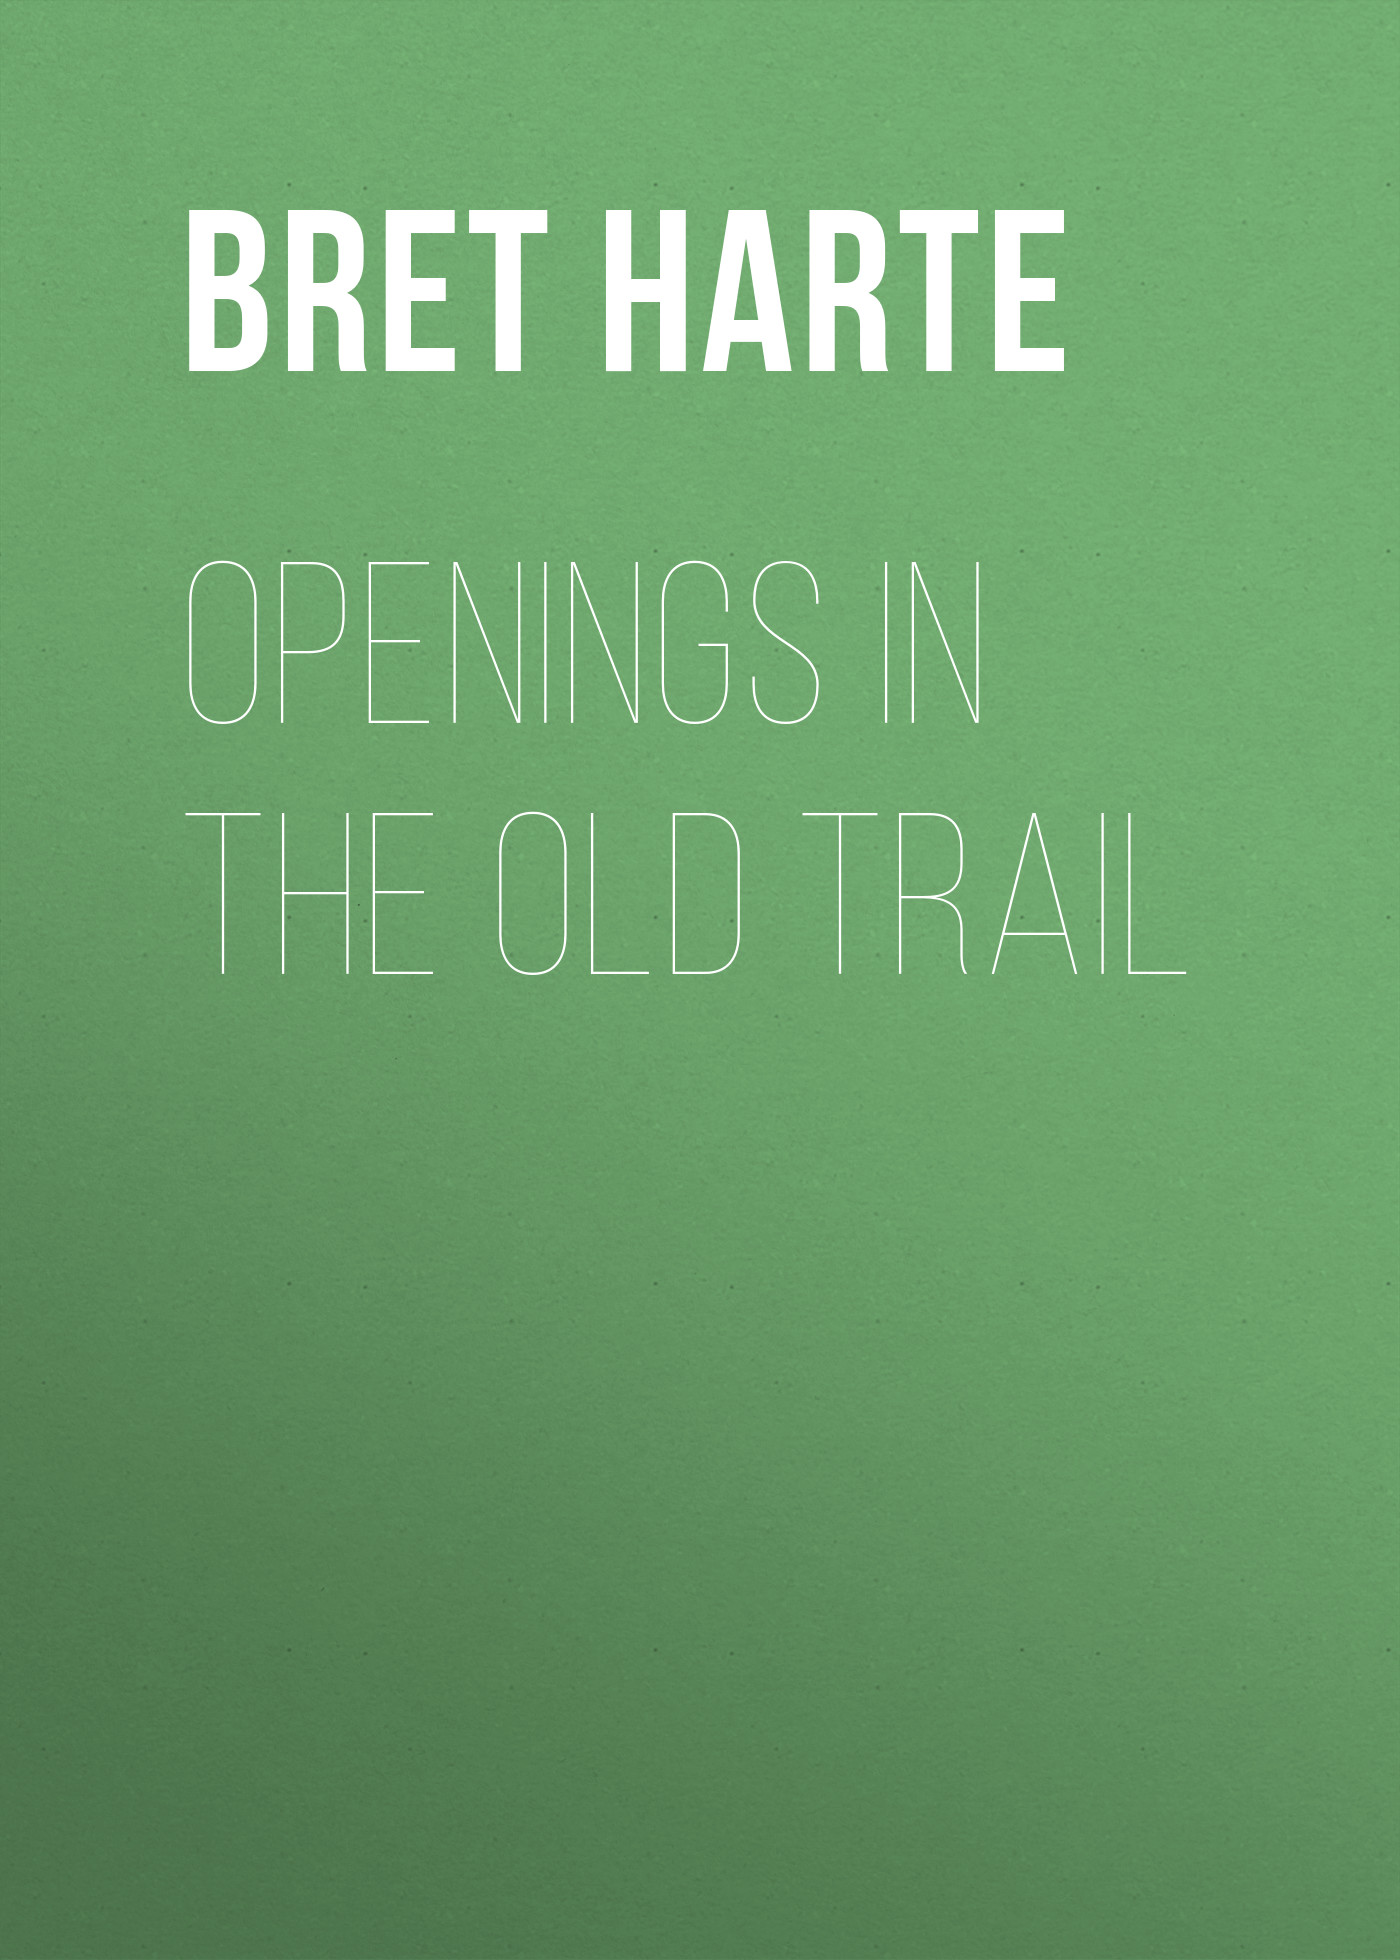 все цены на Bret Harte Openings in the Old Trail онлайн